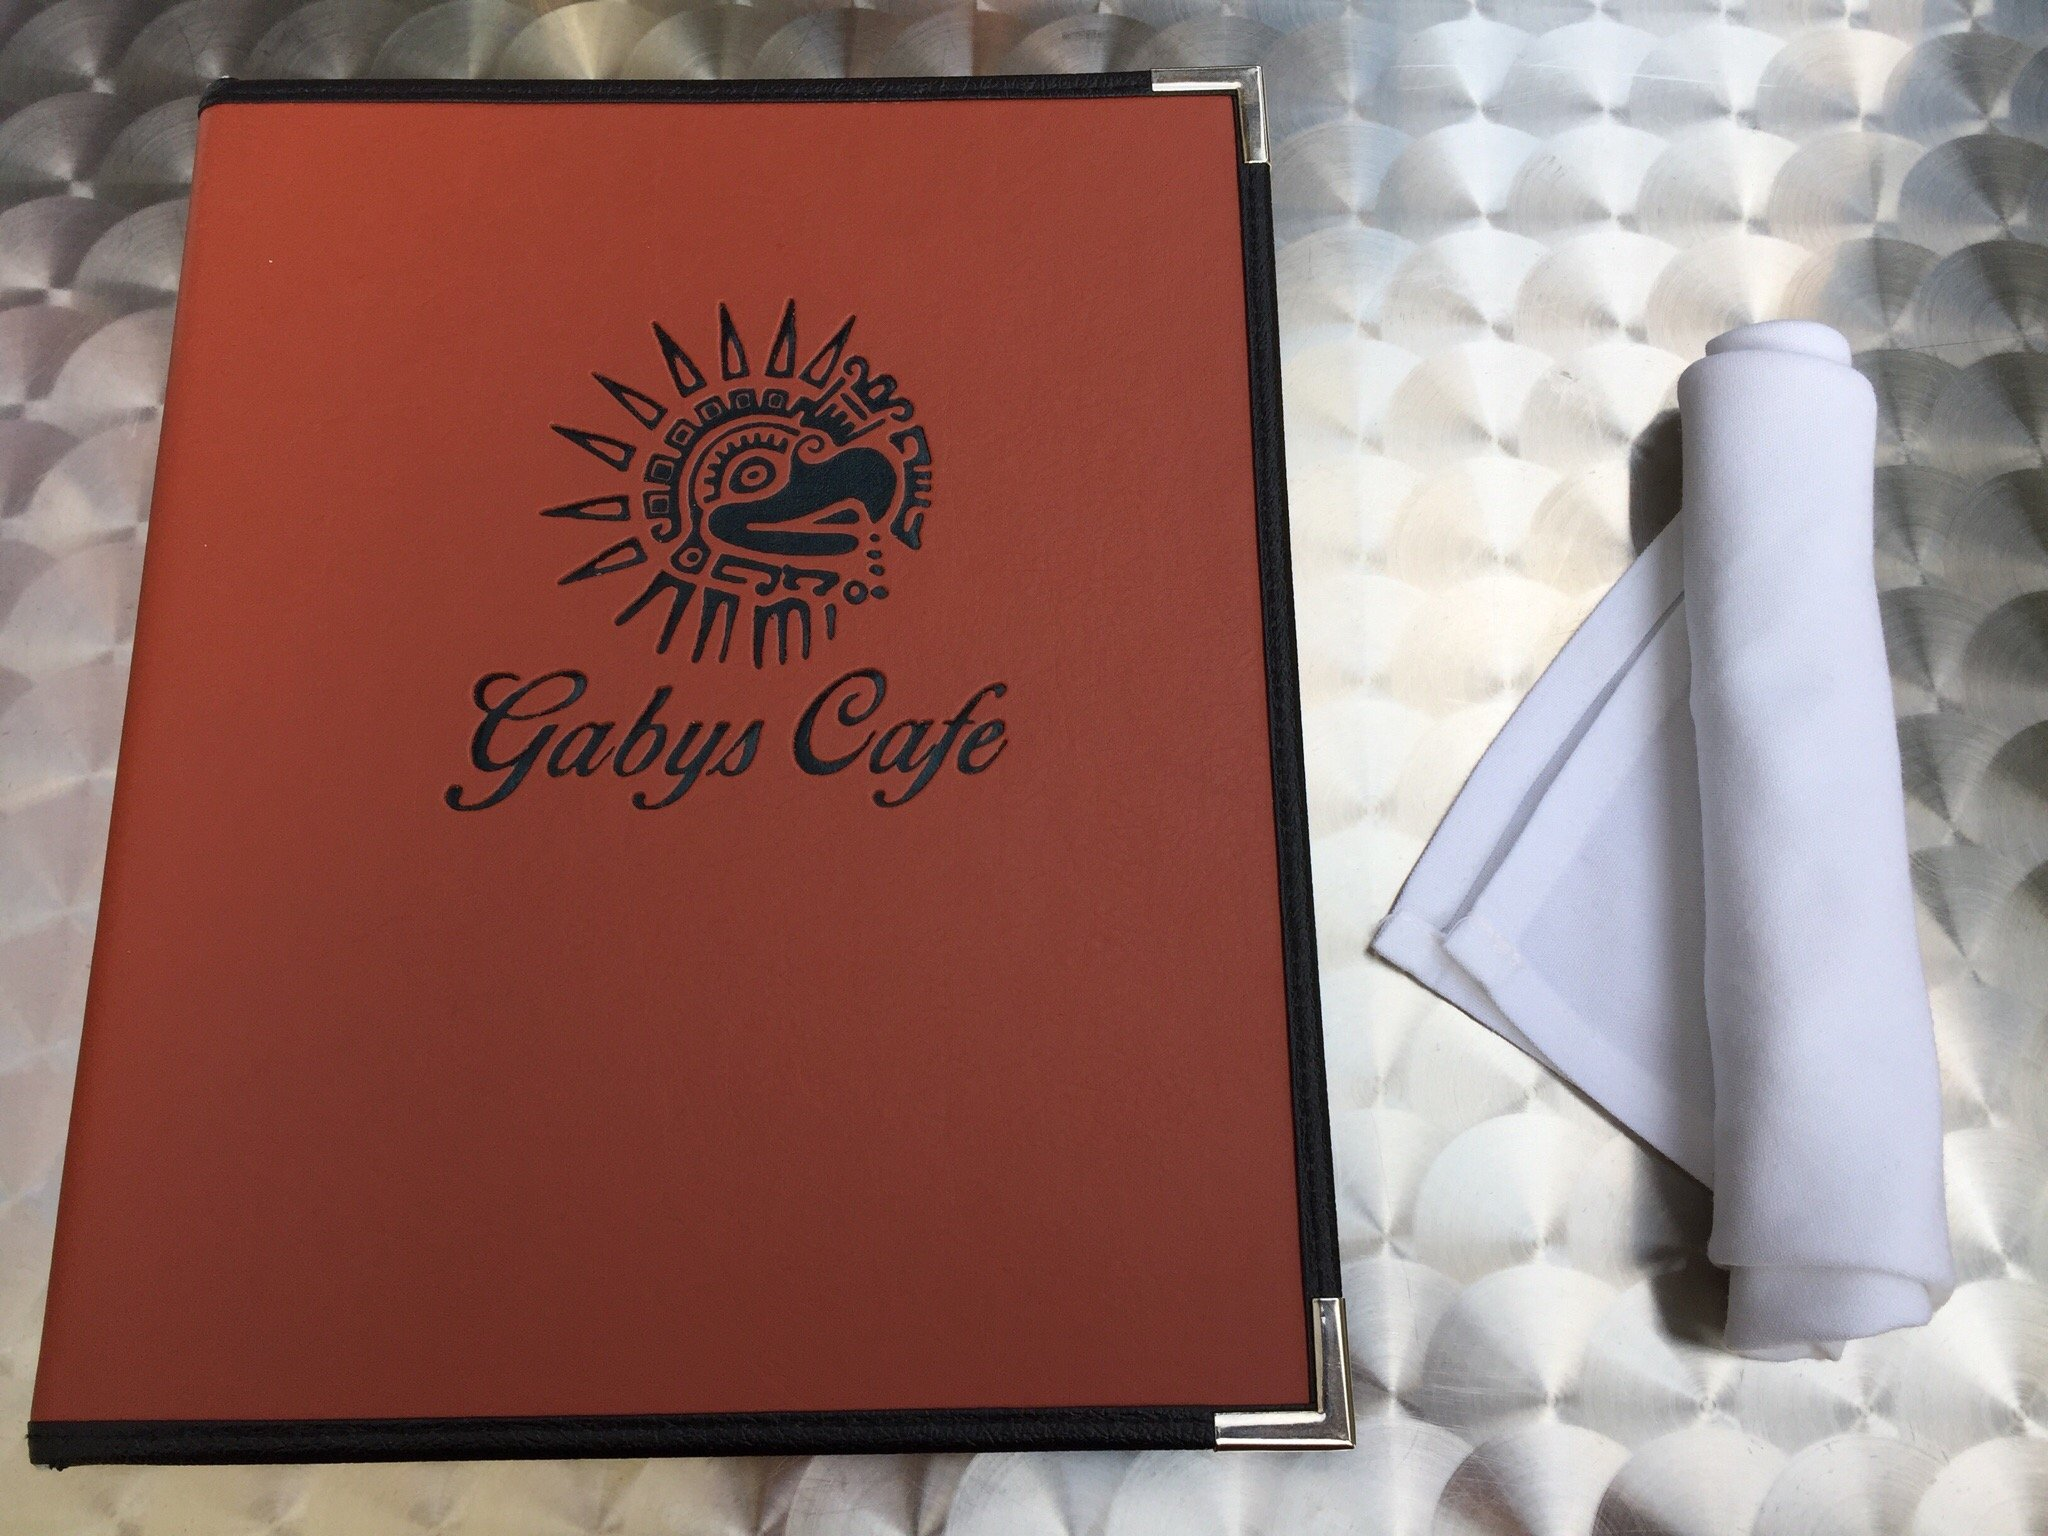 gabys cafe menu displayed on a table